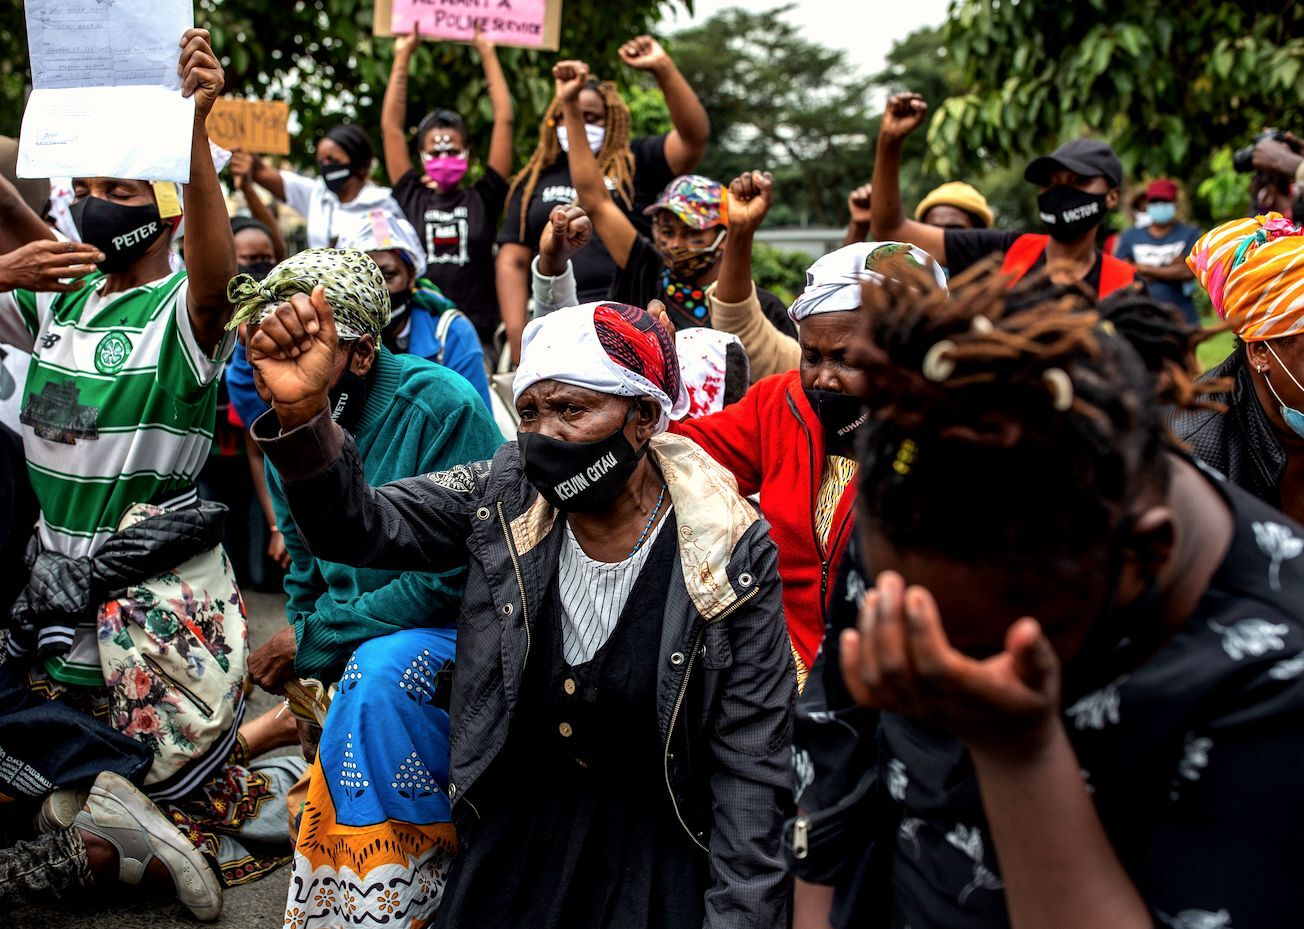 Kevin Gitau's mother (C) wears a mask with her son's name, who was killed by Kenyan Police during a nigh curfew, as she raises her fist in front of the Kenyan Parliament during their protest against police brutality in Nairobi on June 9, 2020.